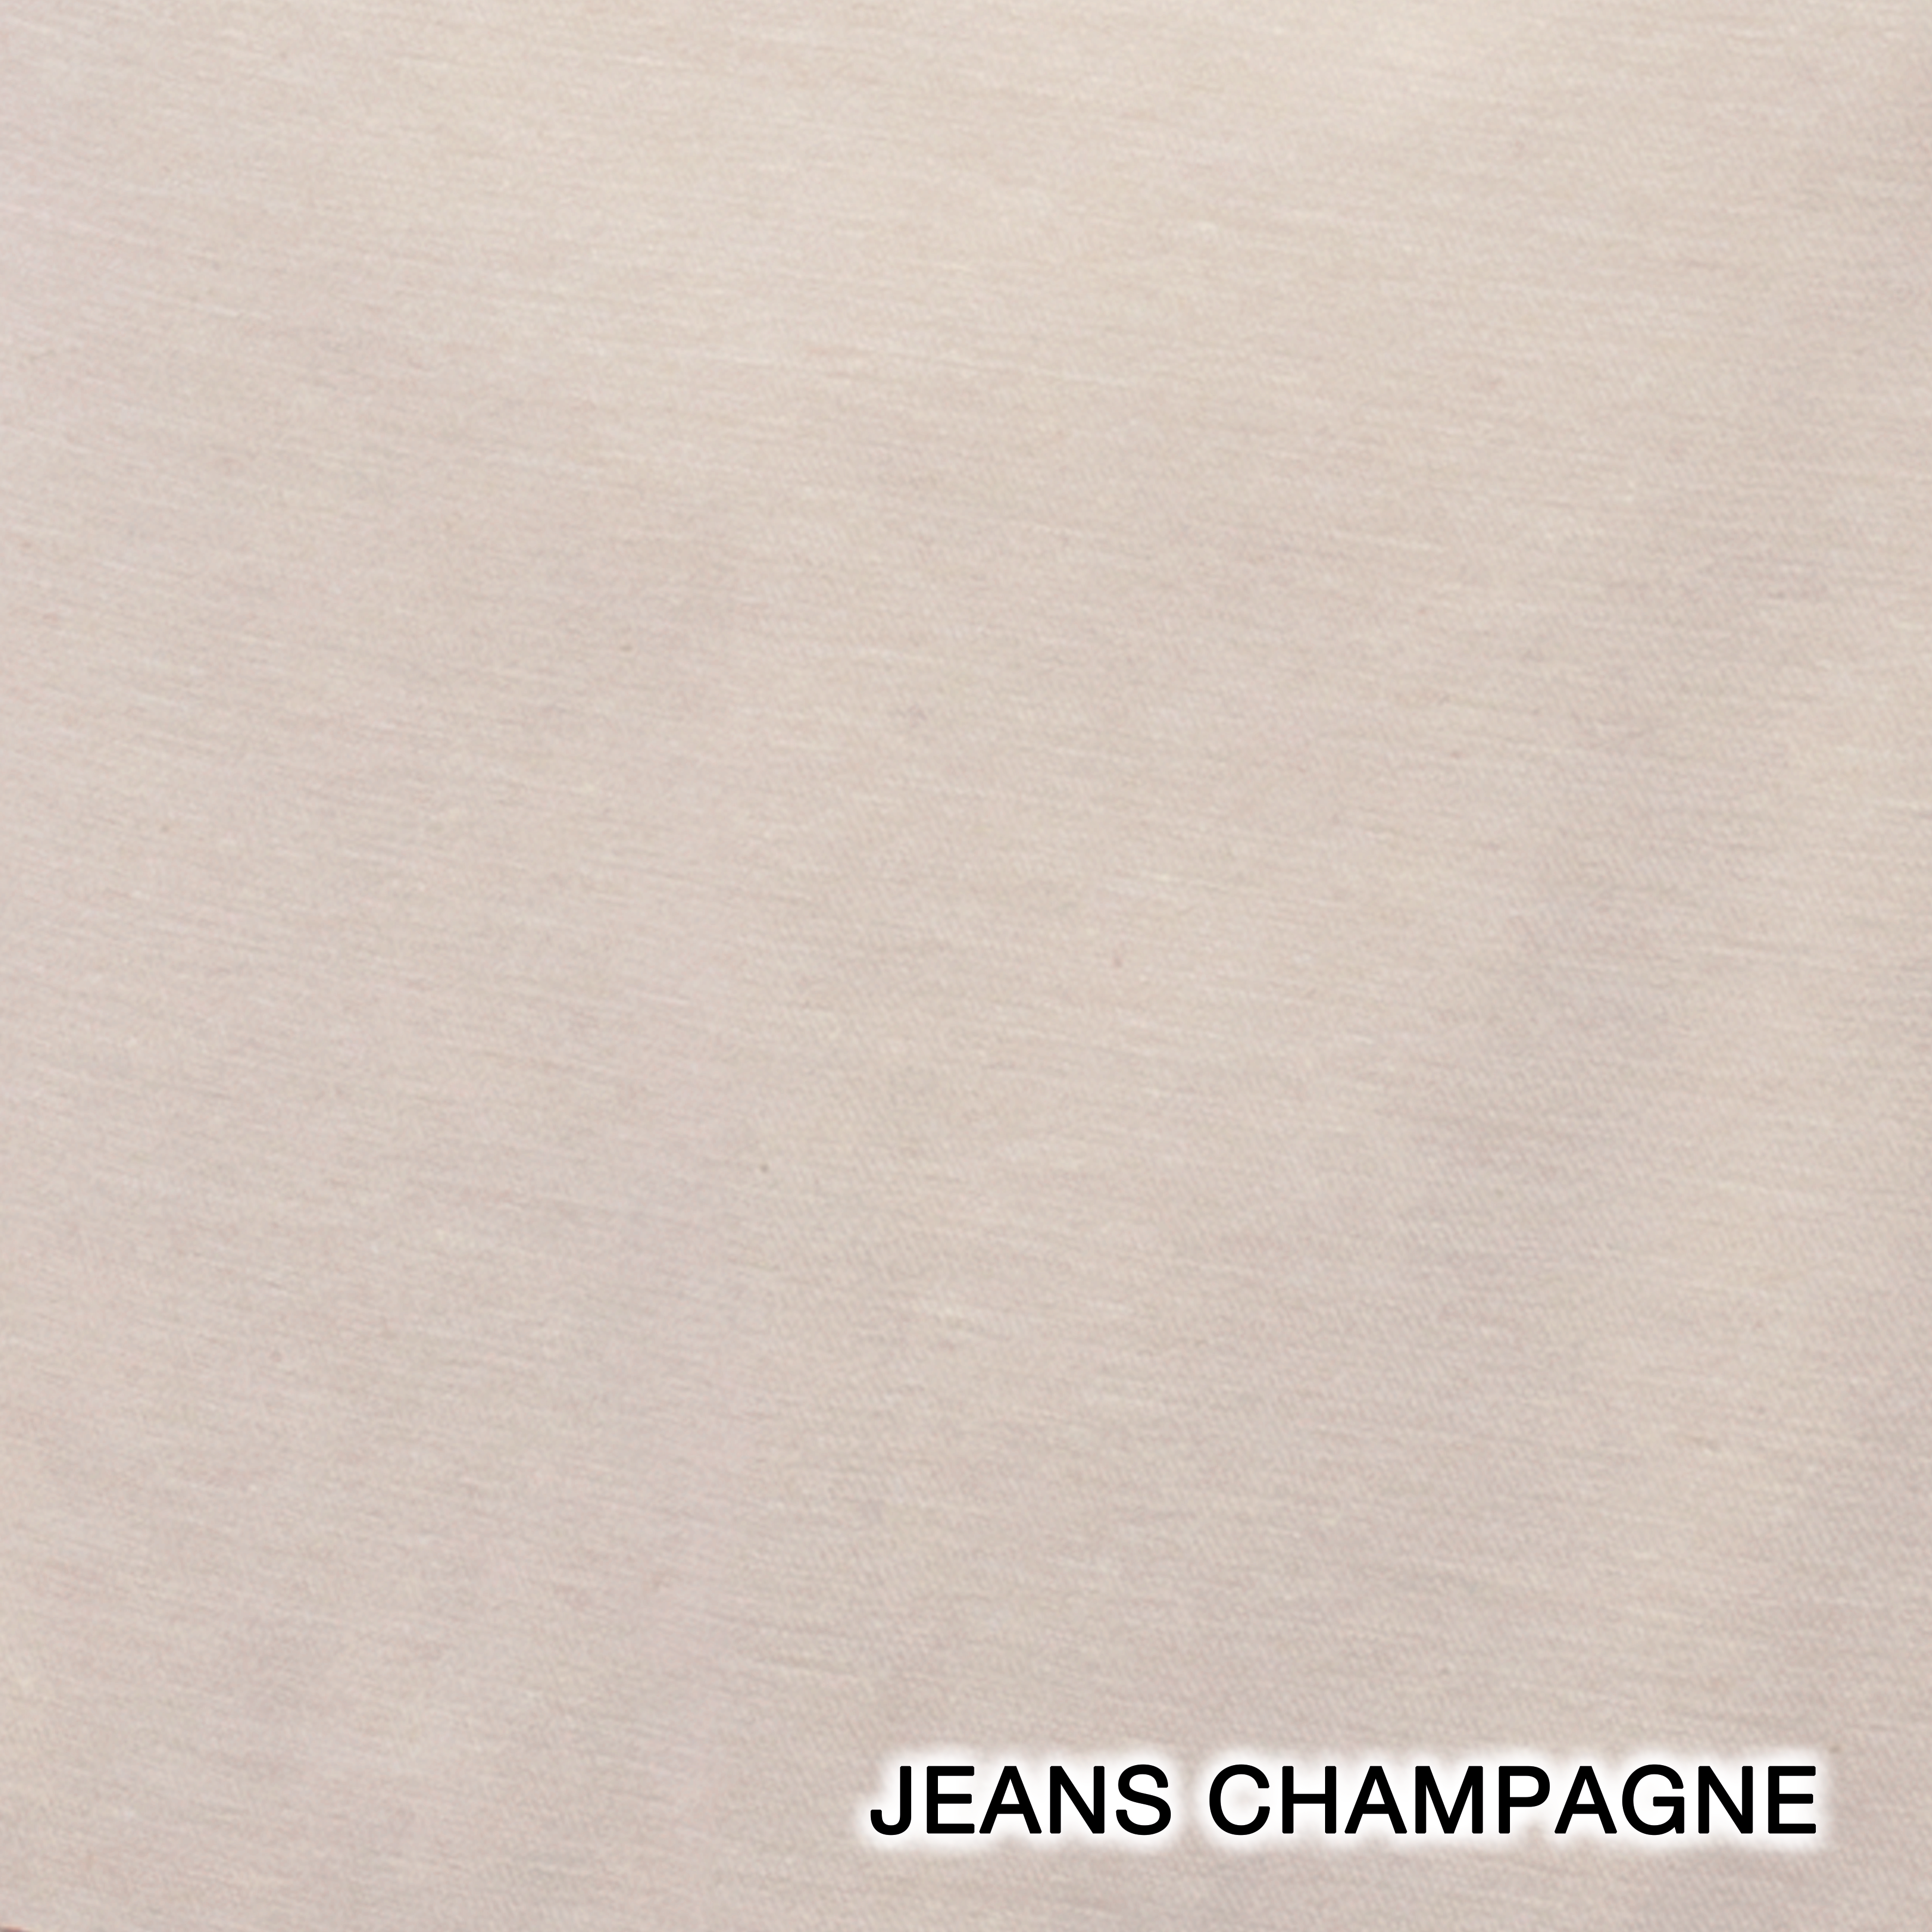 jeans champagne